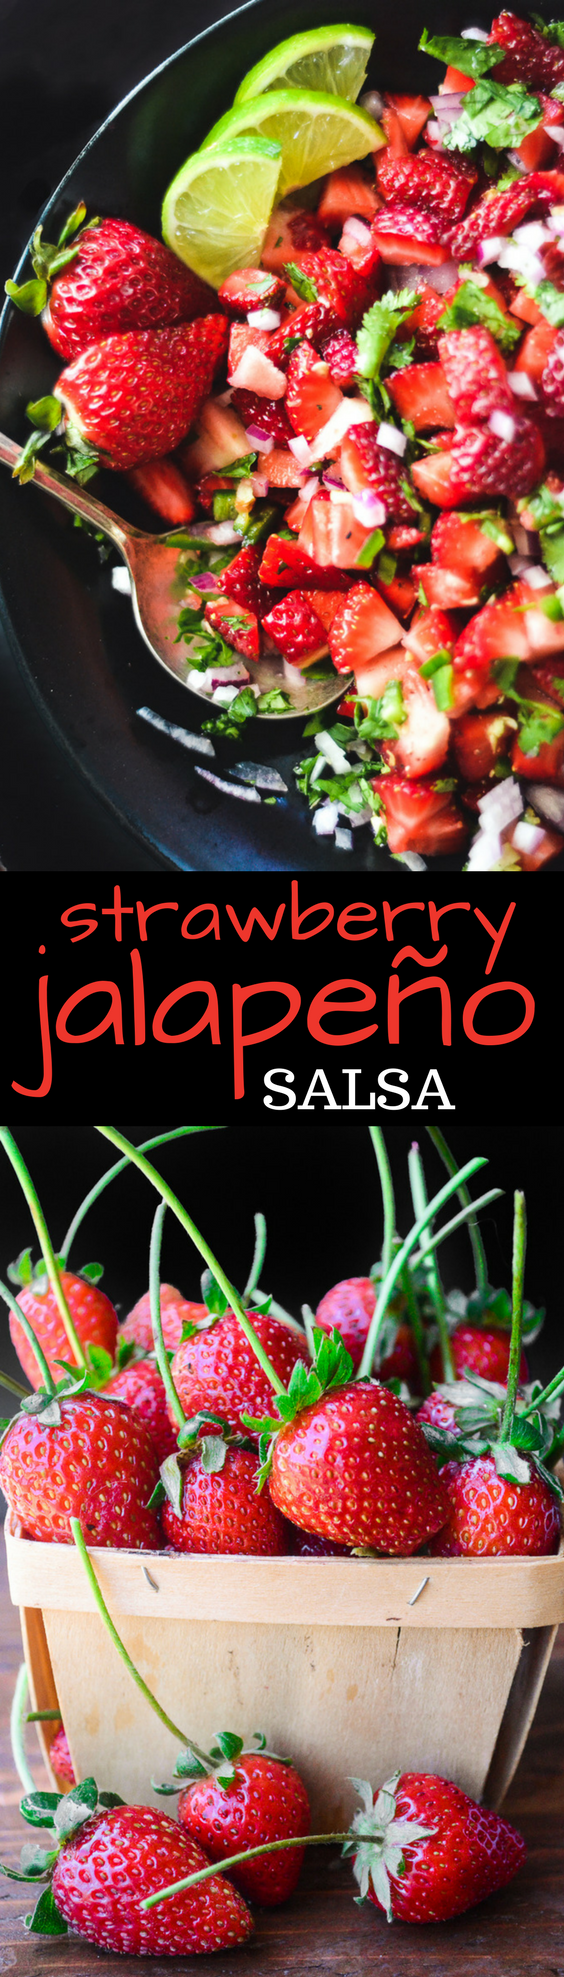 This Strawberry Jalapeno Salsa ~ juicy strawberries tossed with lime, cilantro and finely minced red onion, with the added kick of jalapeño. You can use it on fish, tacos, chicken, meats, or just scoop it up with chips. It's the perfect spring and summer appetizer! #salsa #appetizer #strawberries #homemade #fresh #easy #jalapenos #cincodemayo #barbecue #sidedish #recipe #fruit salsa #berries